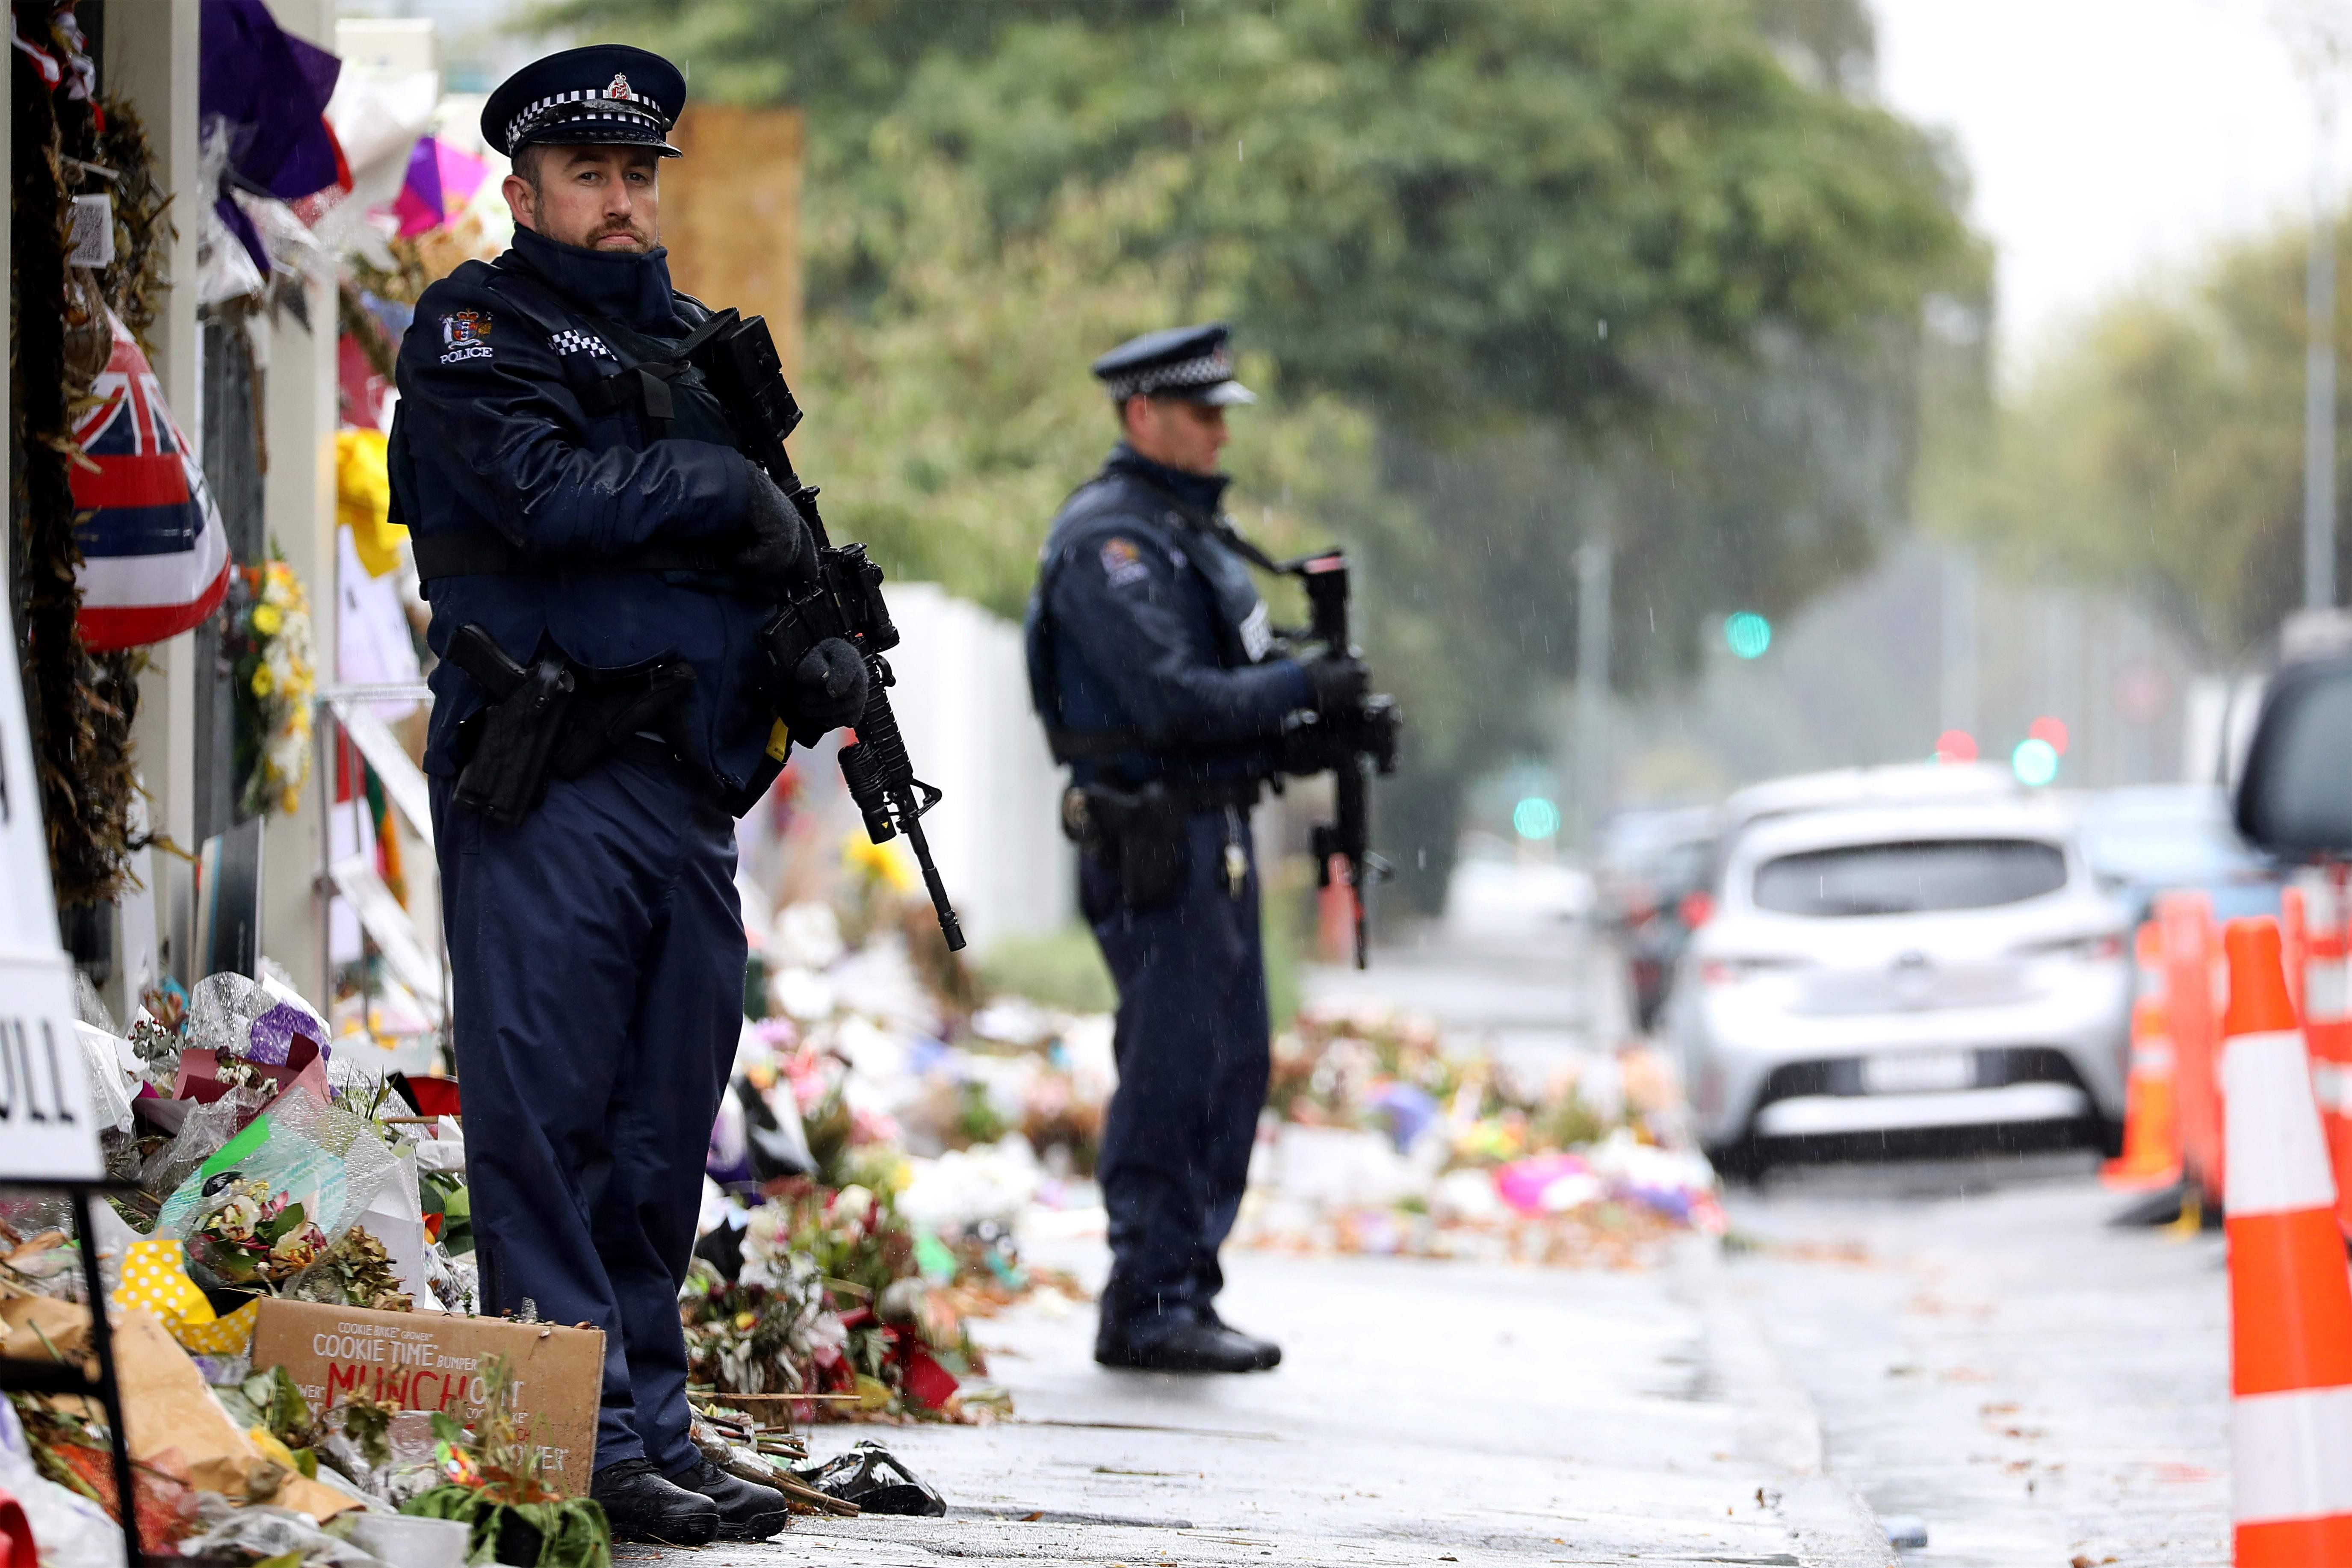 New Zealand mosque shootings: Six in court on charges they sent attack images